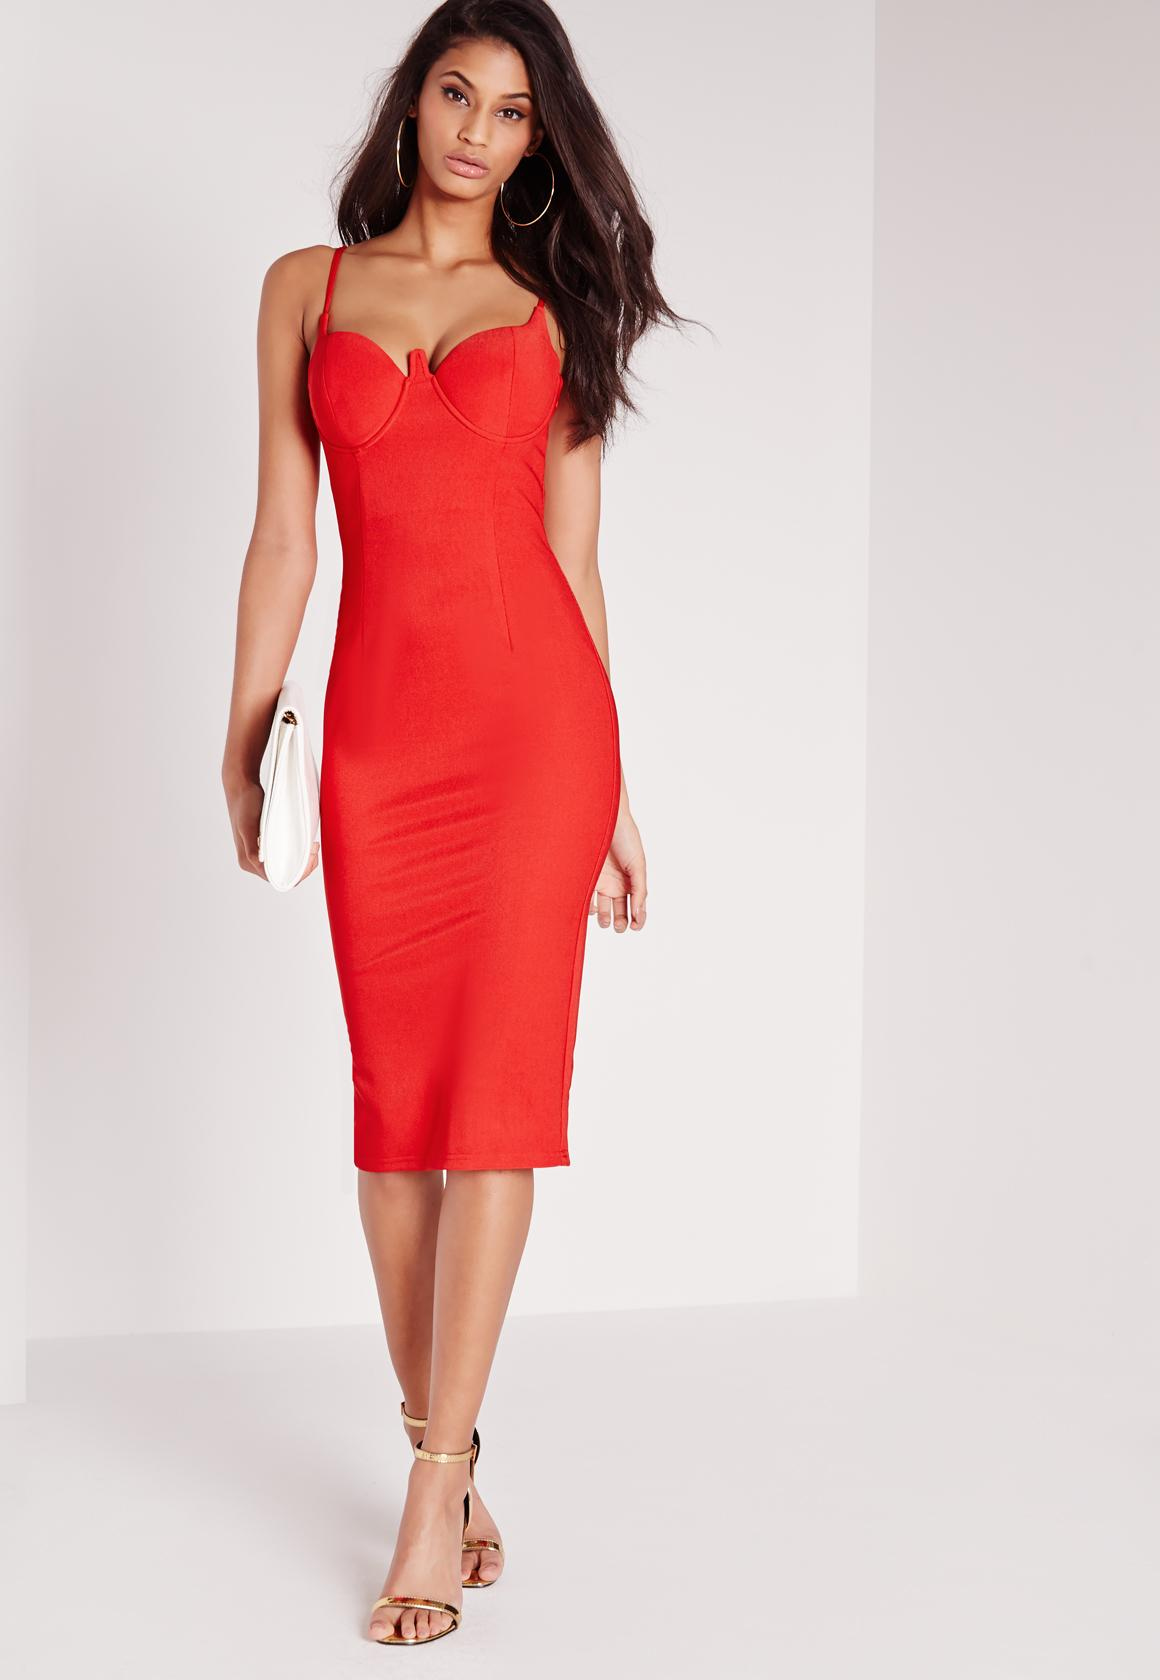 Strappy Bustier Bodycon Dress Red - Dresses - Midi Dresses ...